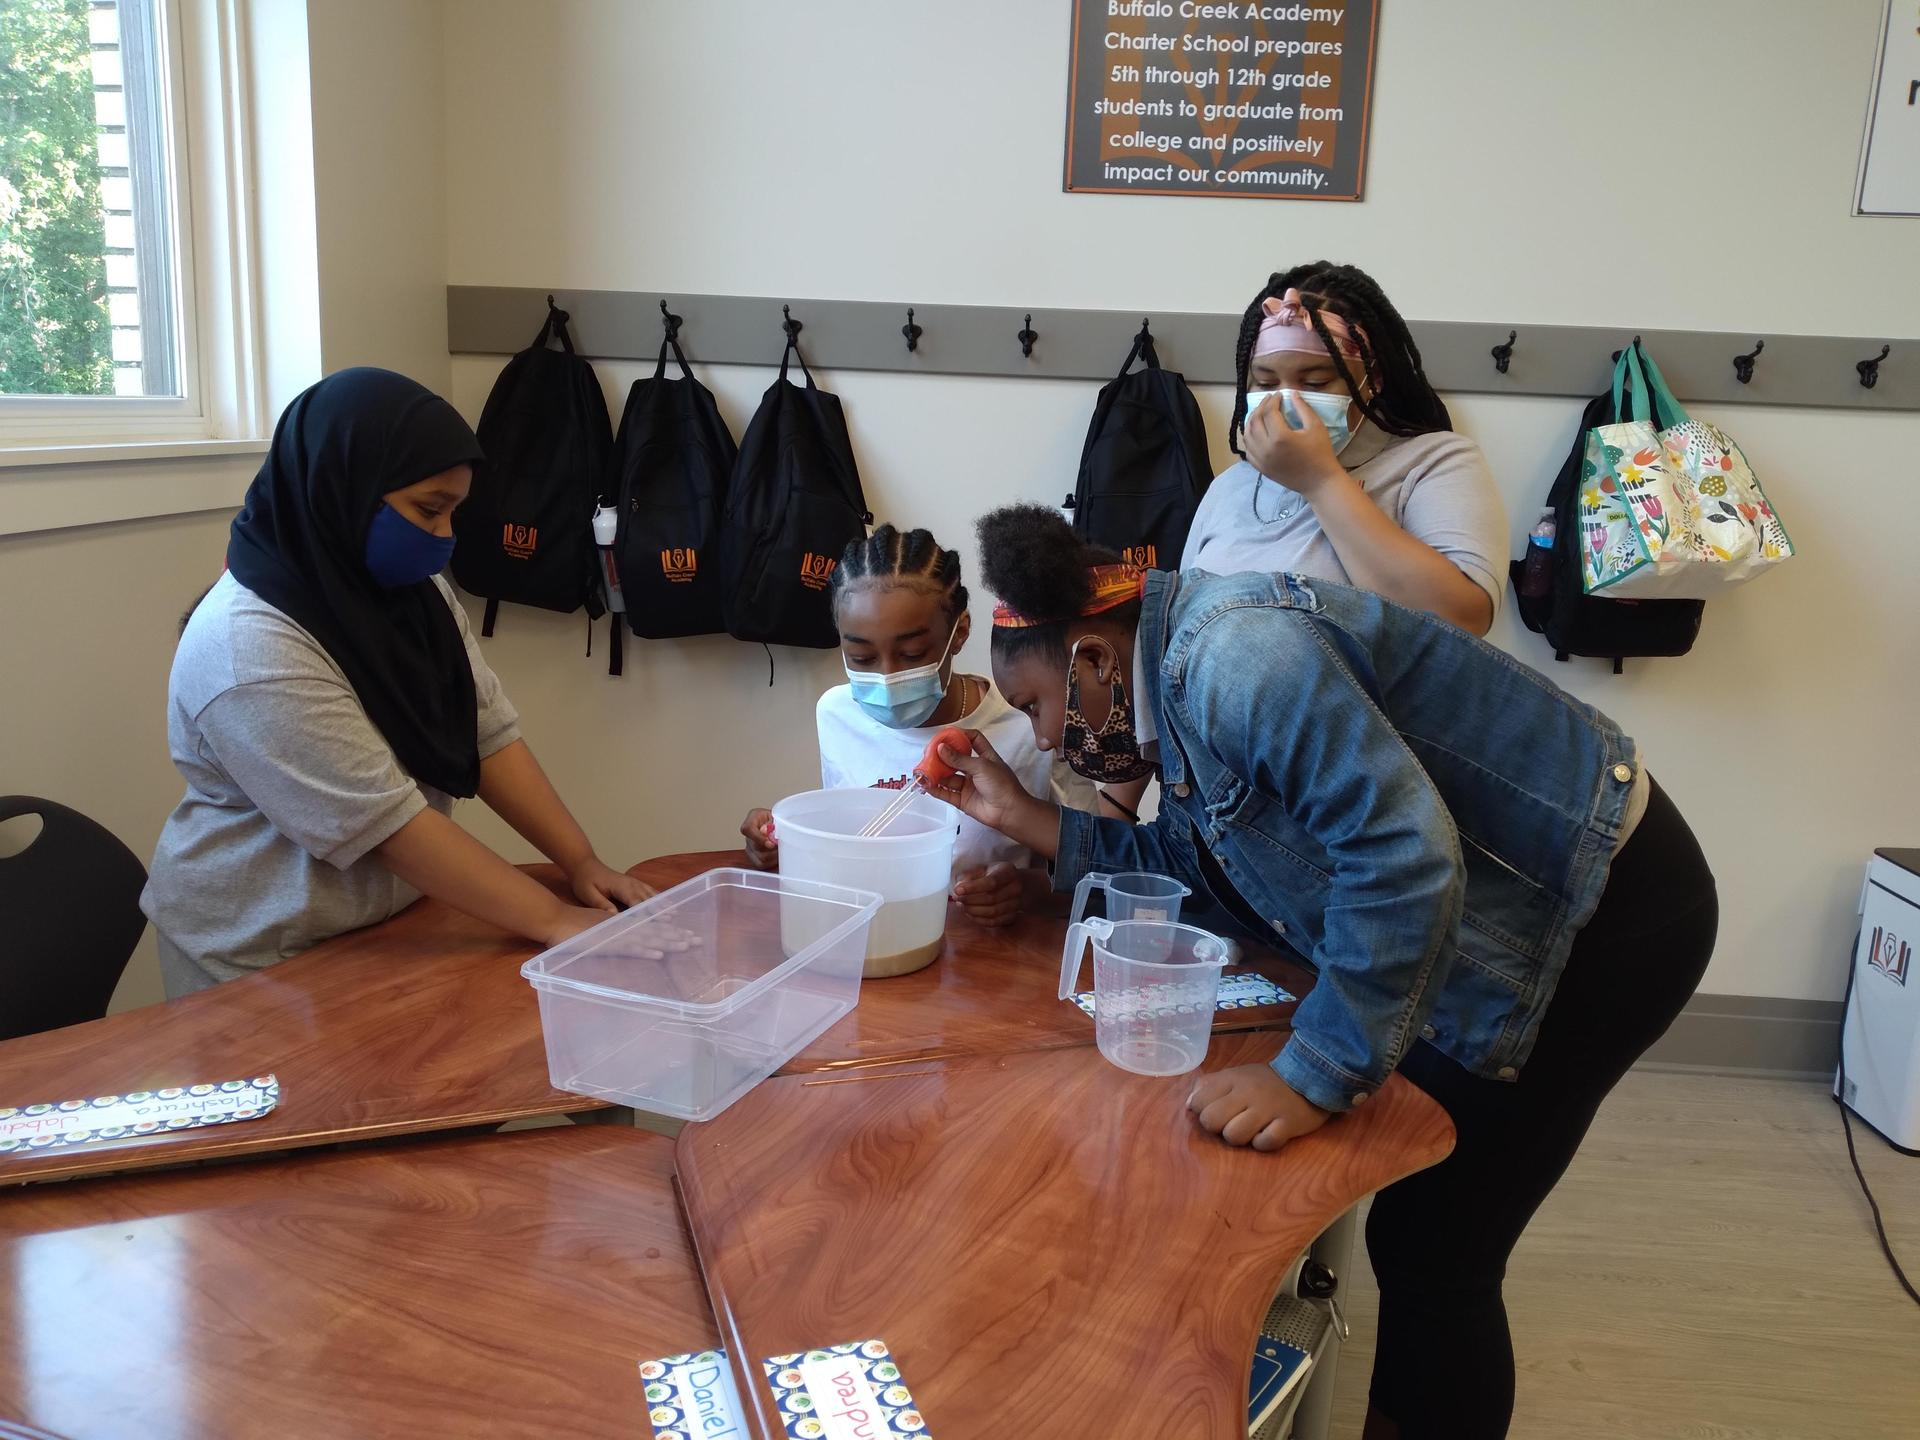 girls doing science in a classroom